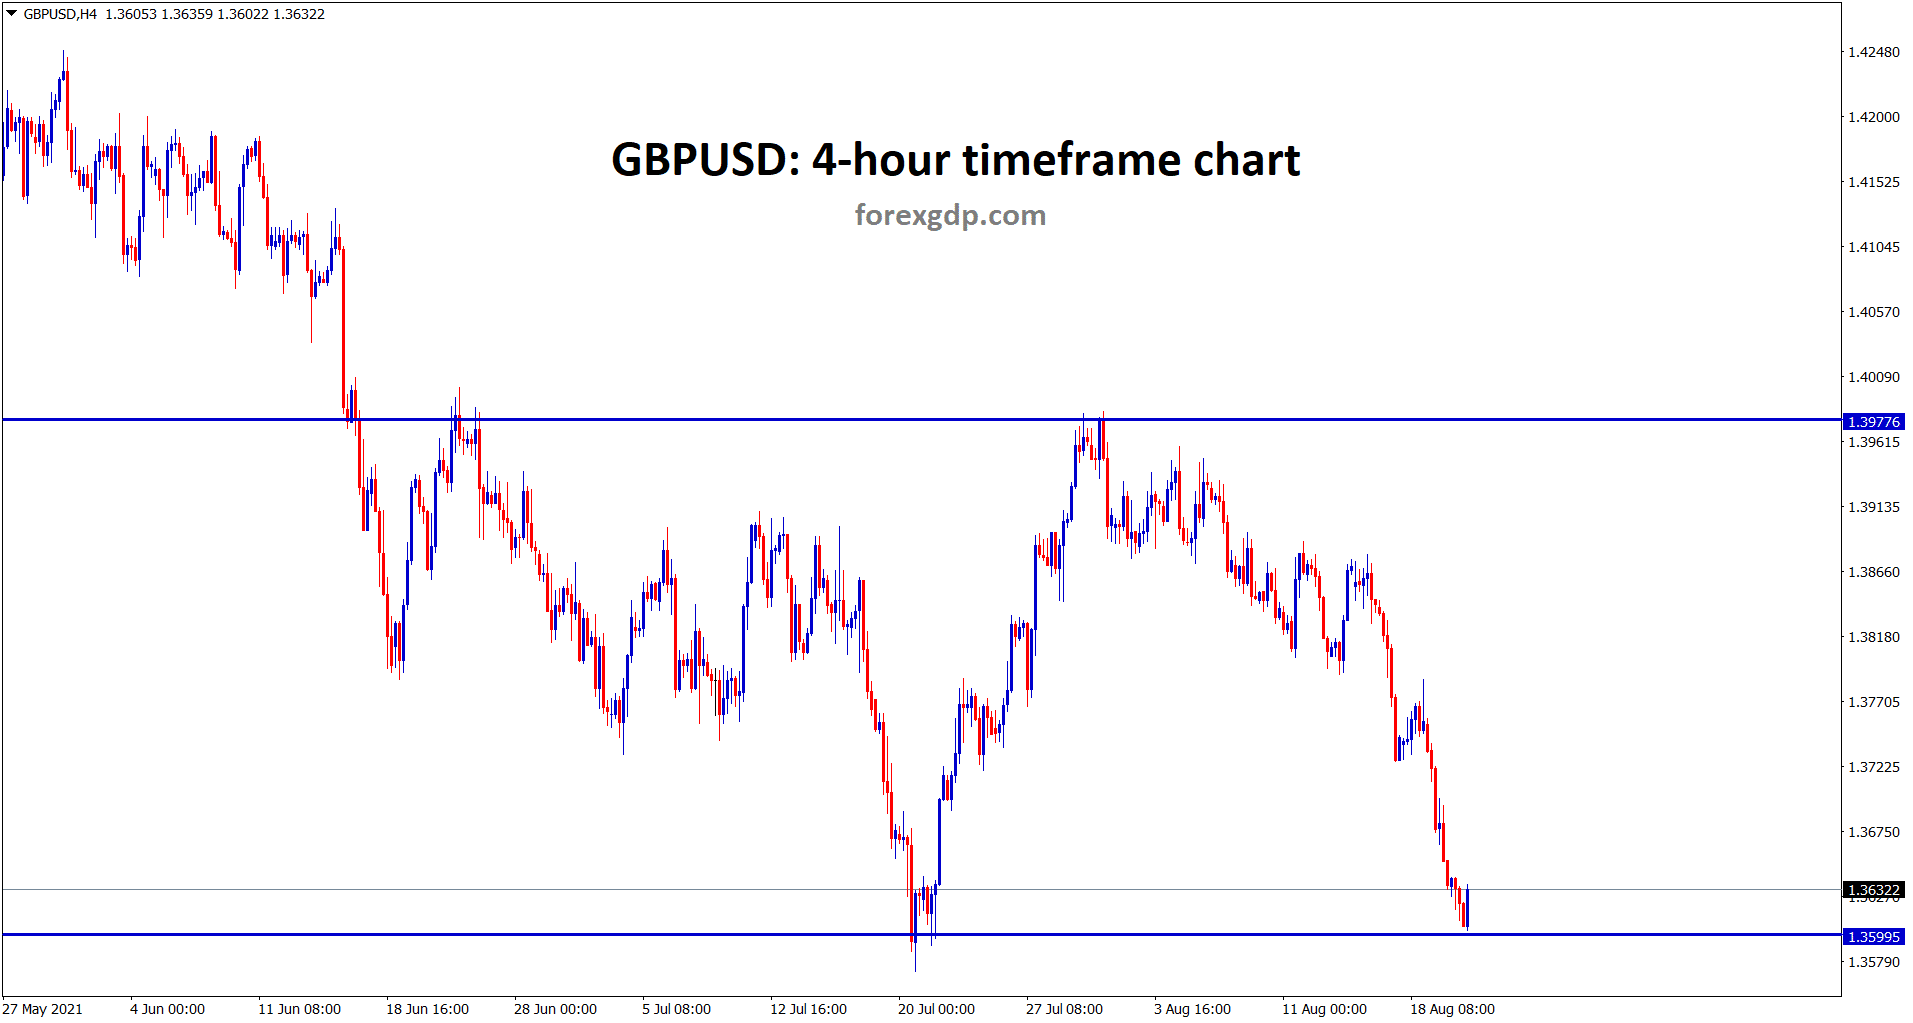 GBPUSD hits the support area wait for reversal or breakout